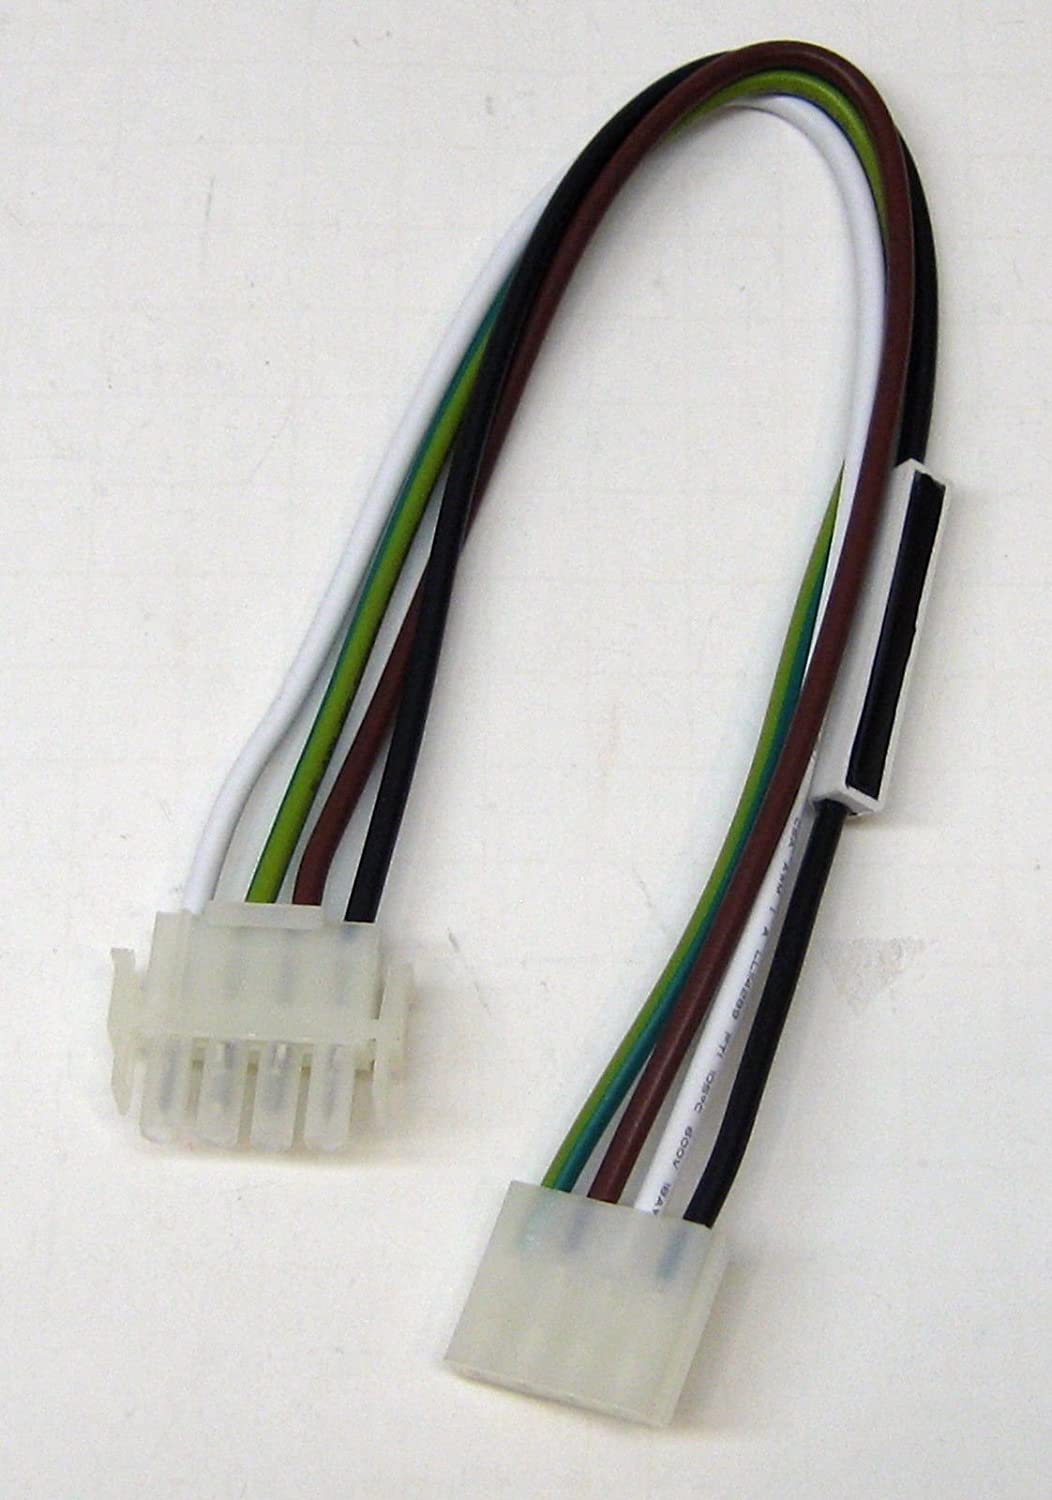 Refrigerator Icemaker Cord Wire Harness for Whirlpool WPD7813010 AP6014598